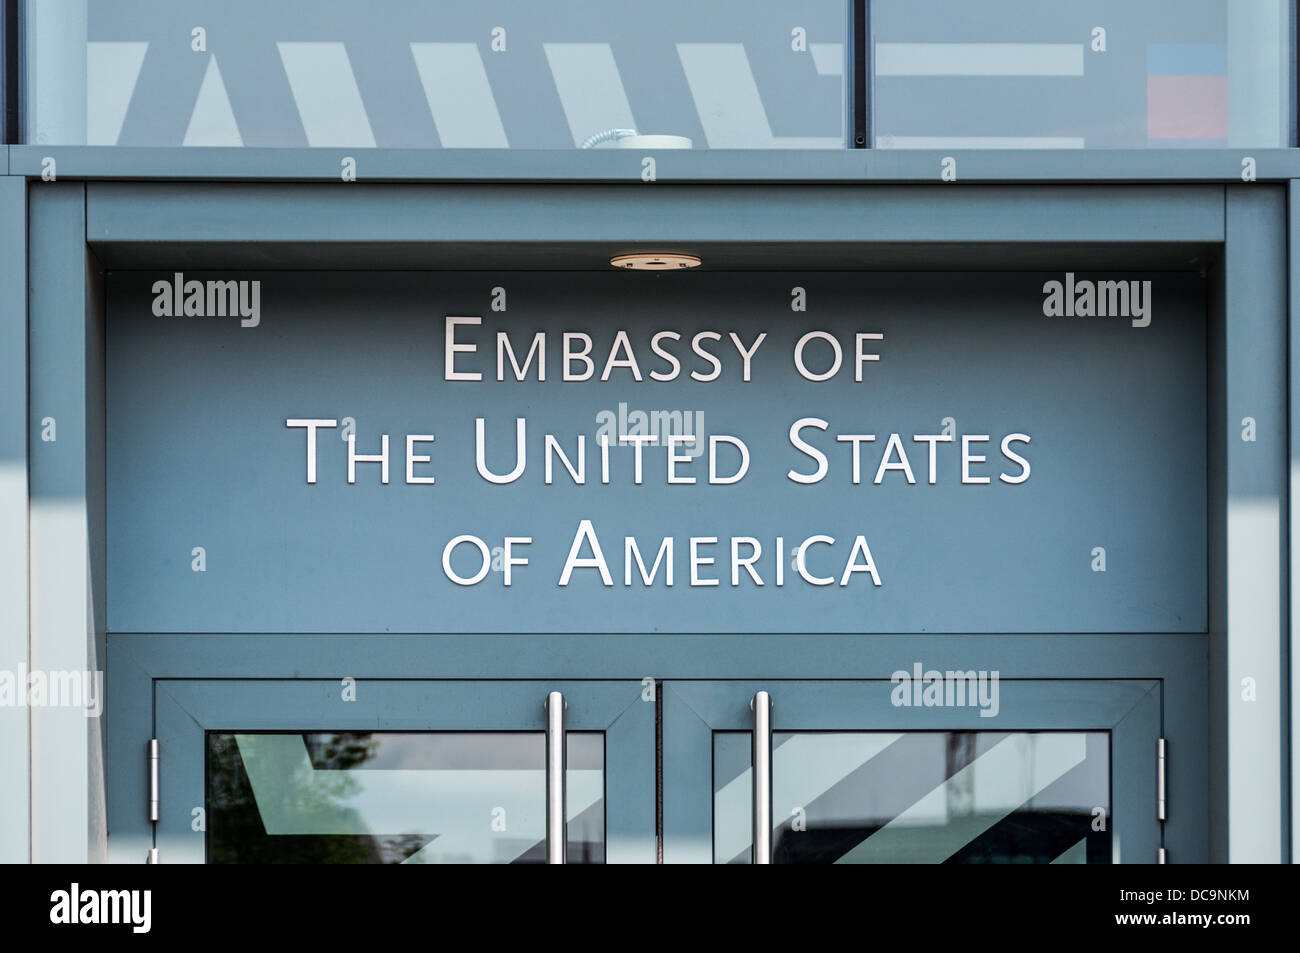 Entrance sign of the Embassy of the United States of America in Berlin, Germany - Stock Image